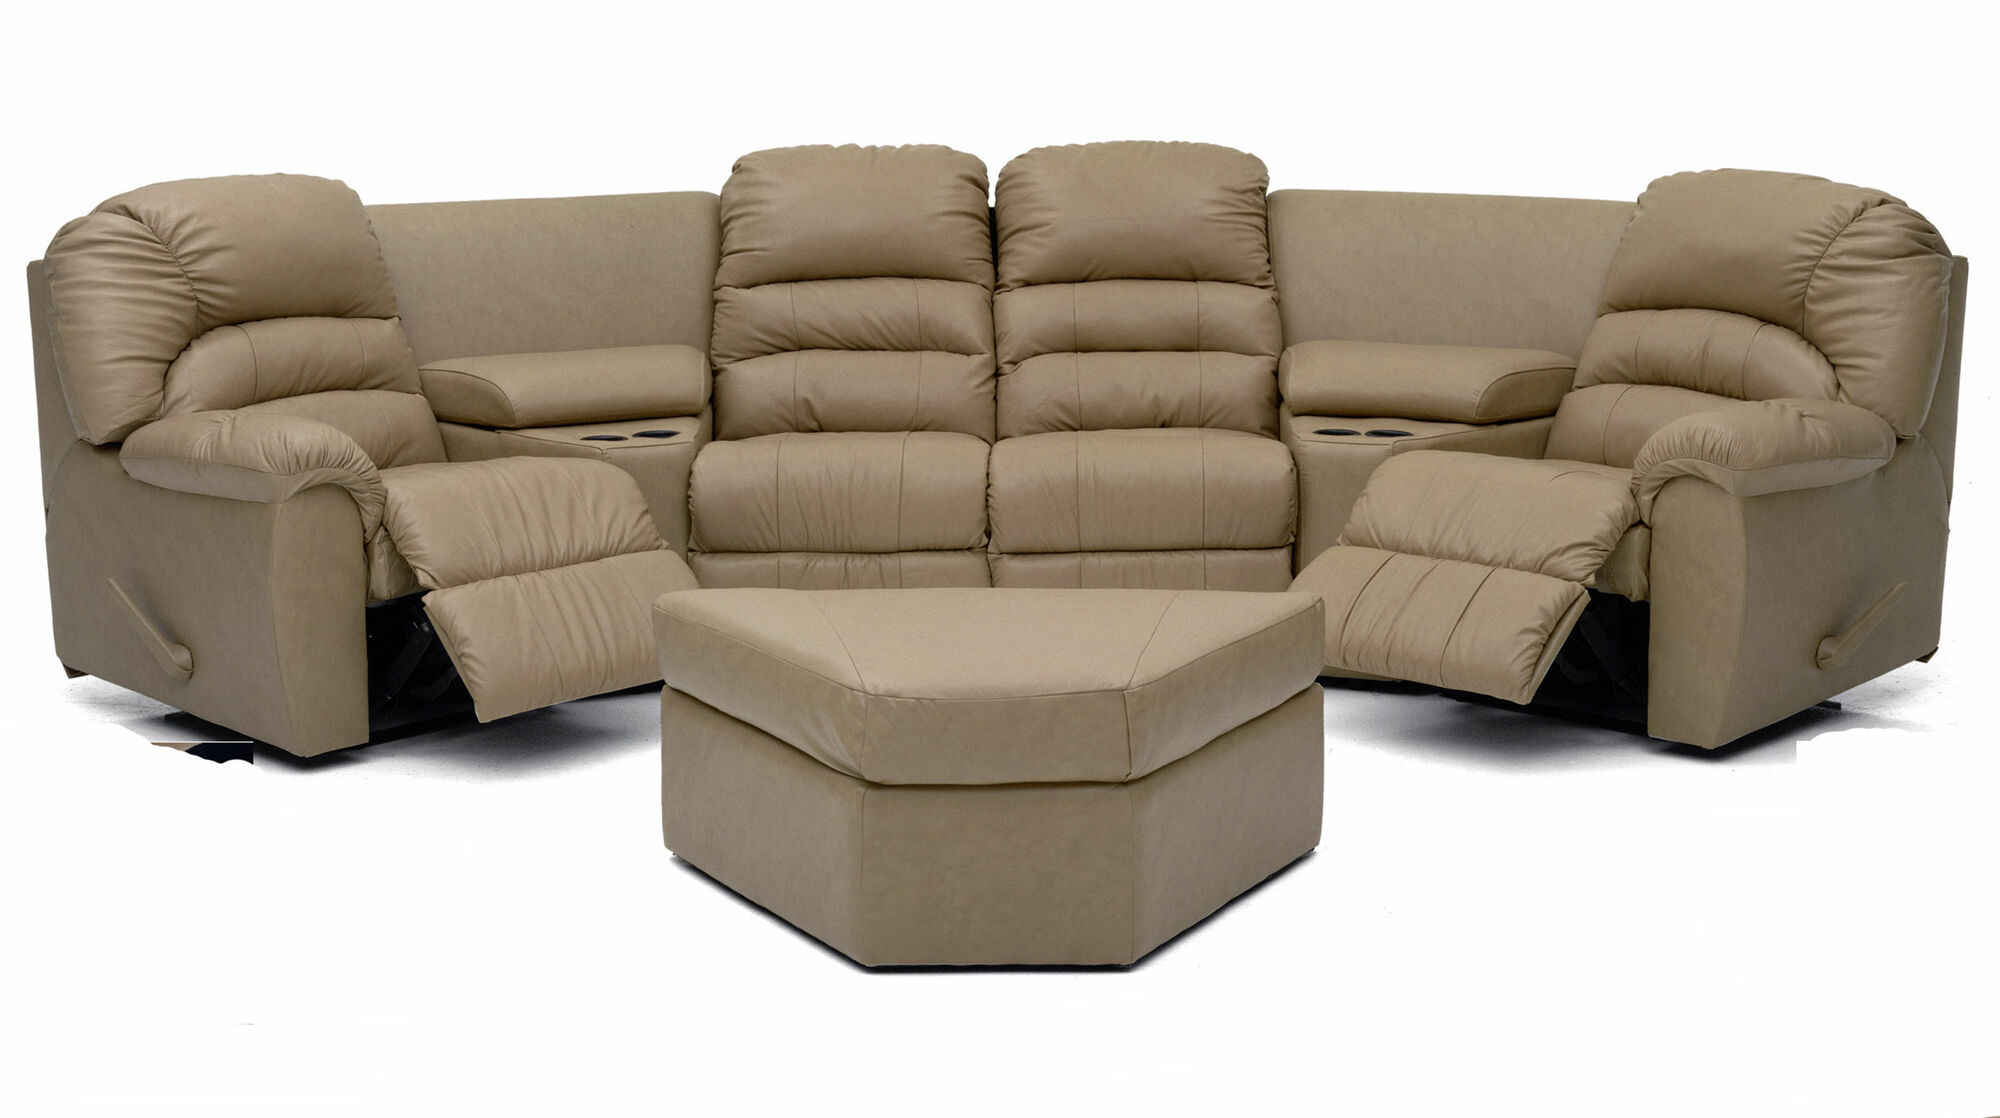 Leather sectional couch with recliners and built in shelf for Sectional sofa recliner repair parts